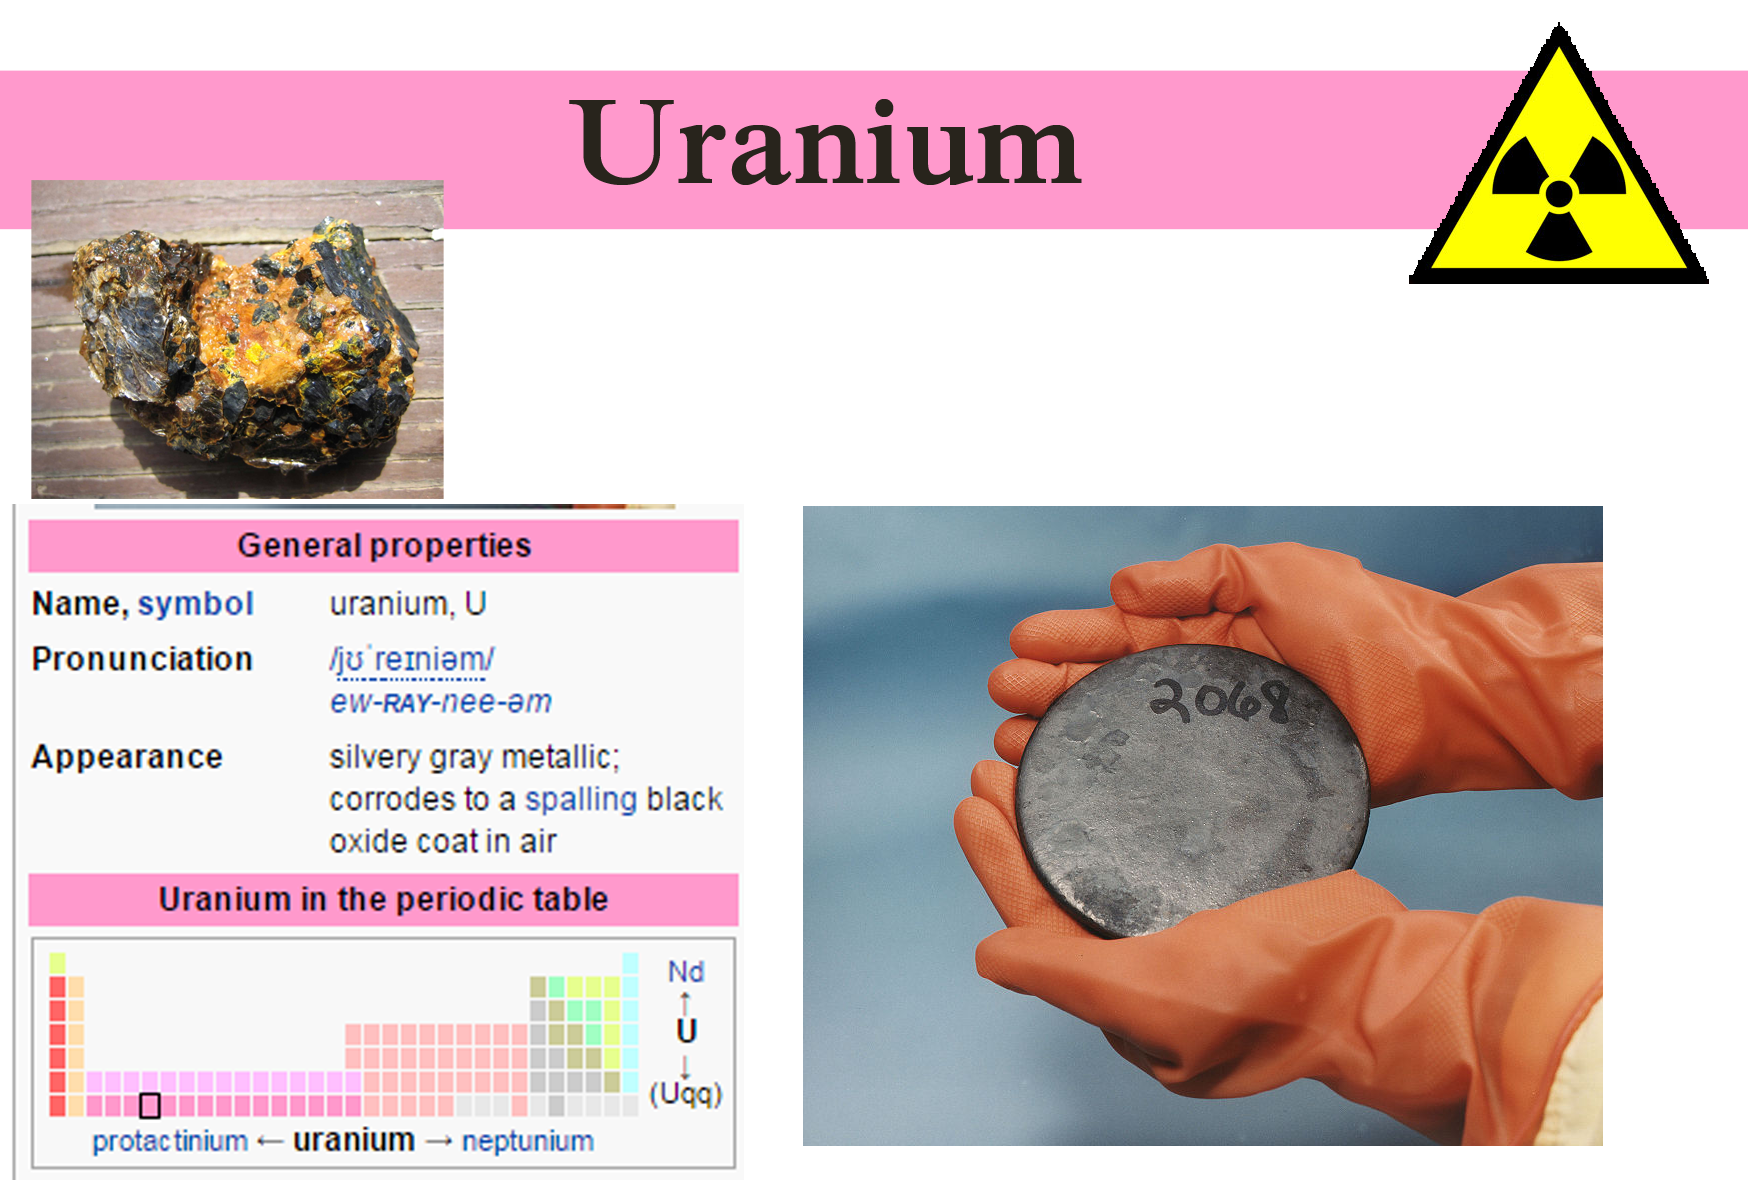 Uranium galnet wiki fandom powered by wikia uranium is a chemical element with symbol u and atomic number 92 it is a silvery white metal in the actinide series of the periodic table gamestrikefo Image collections